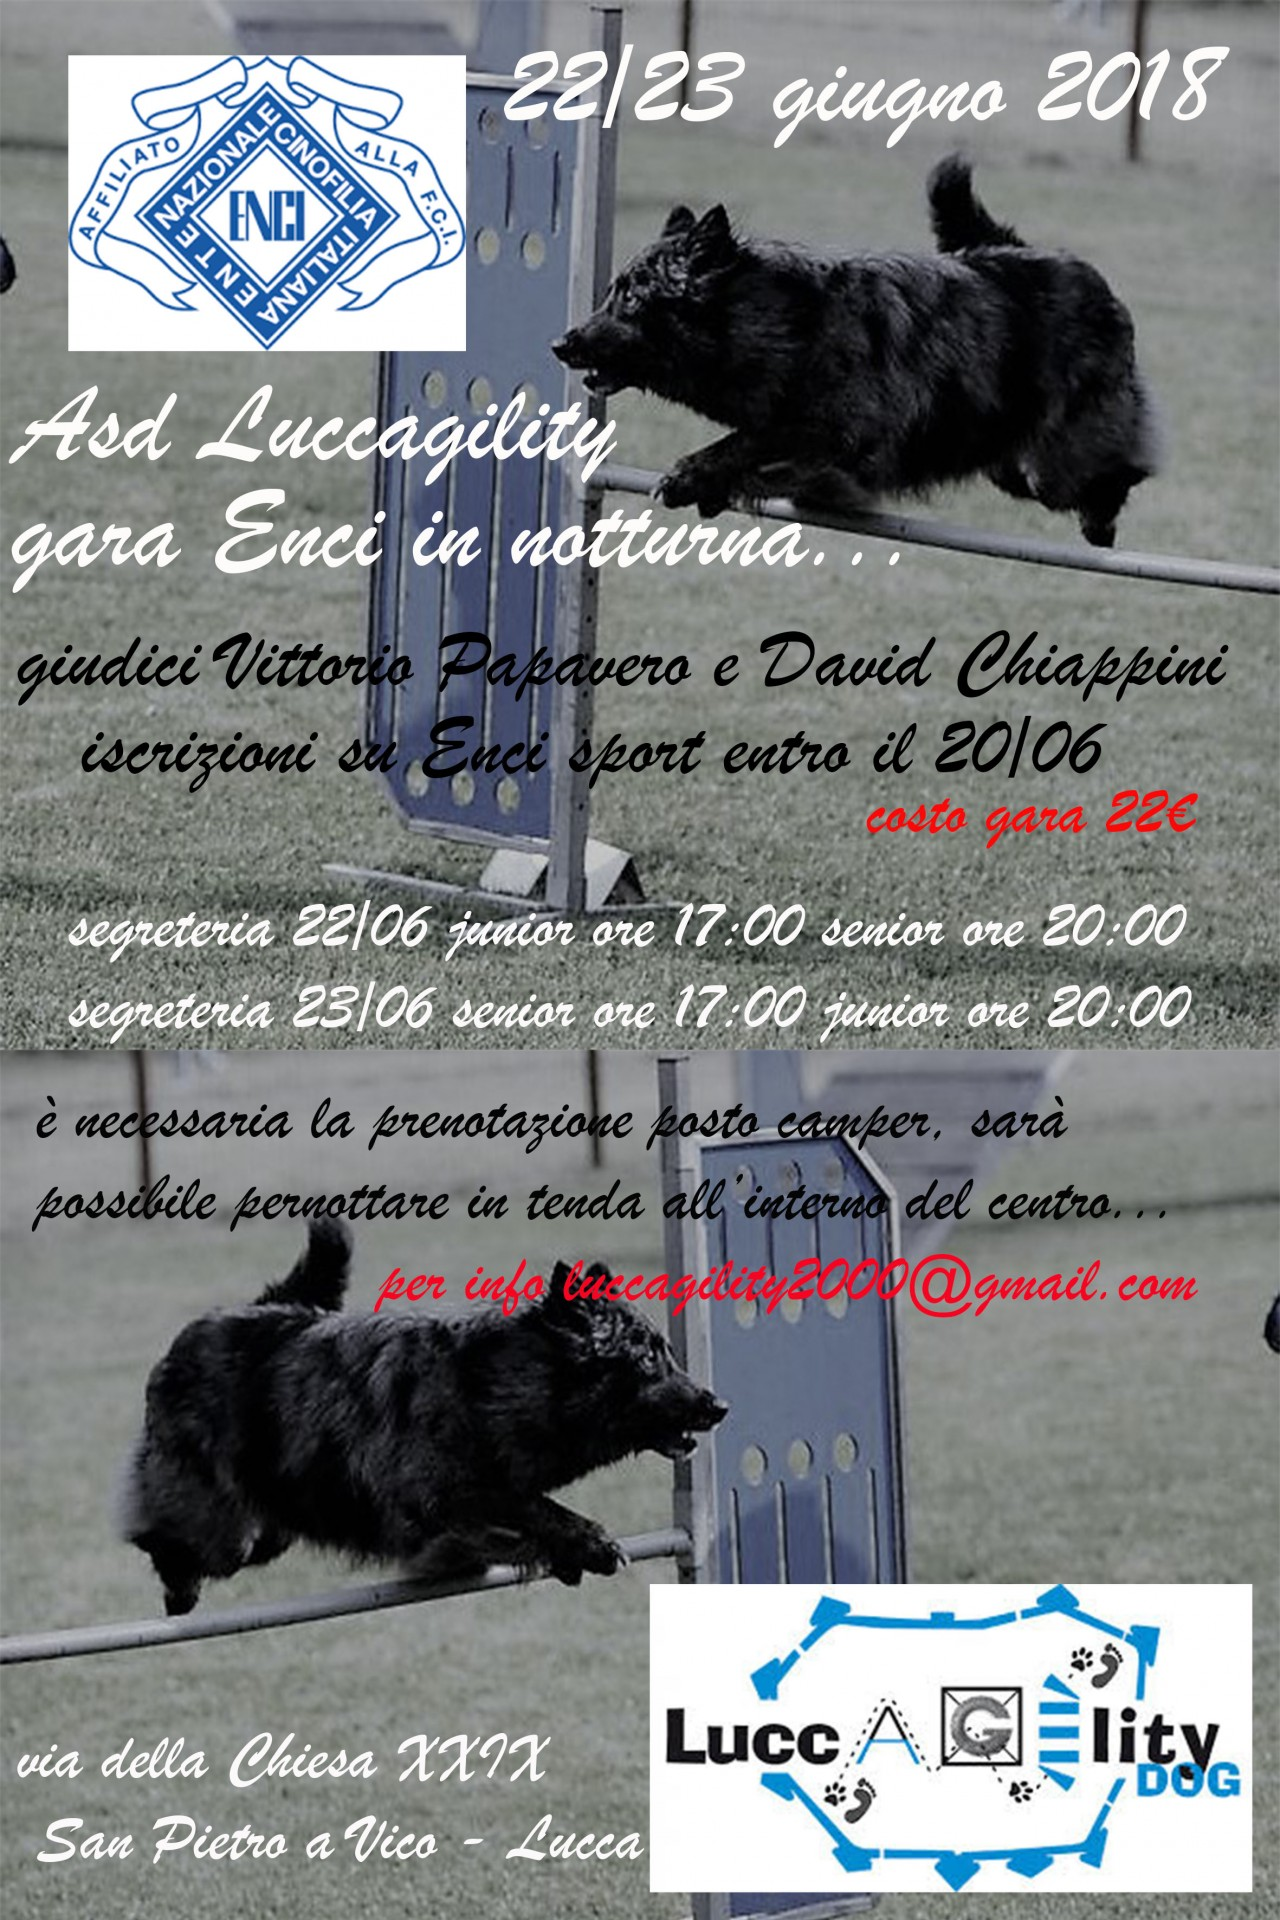 luccagility in nottura..